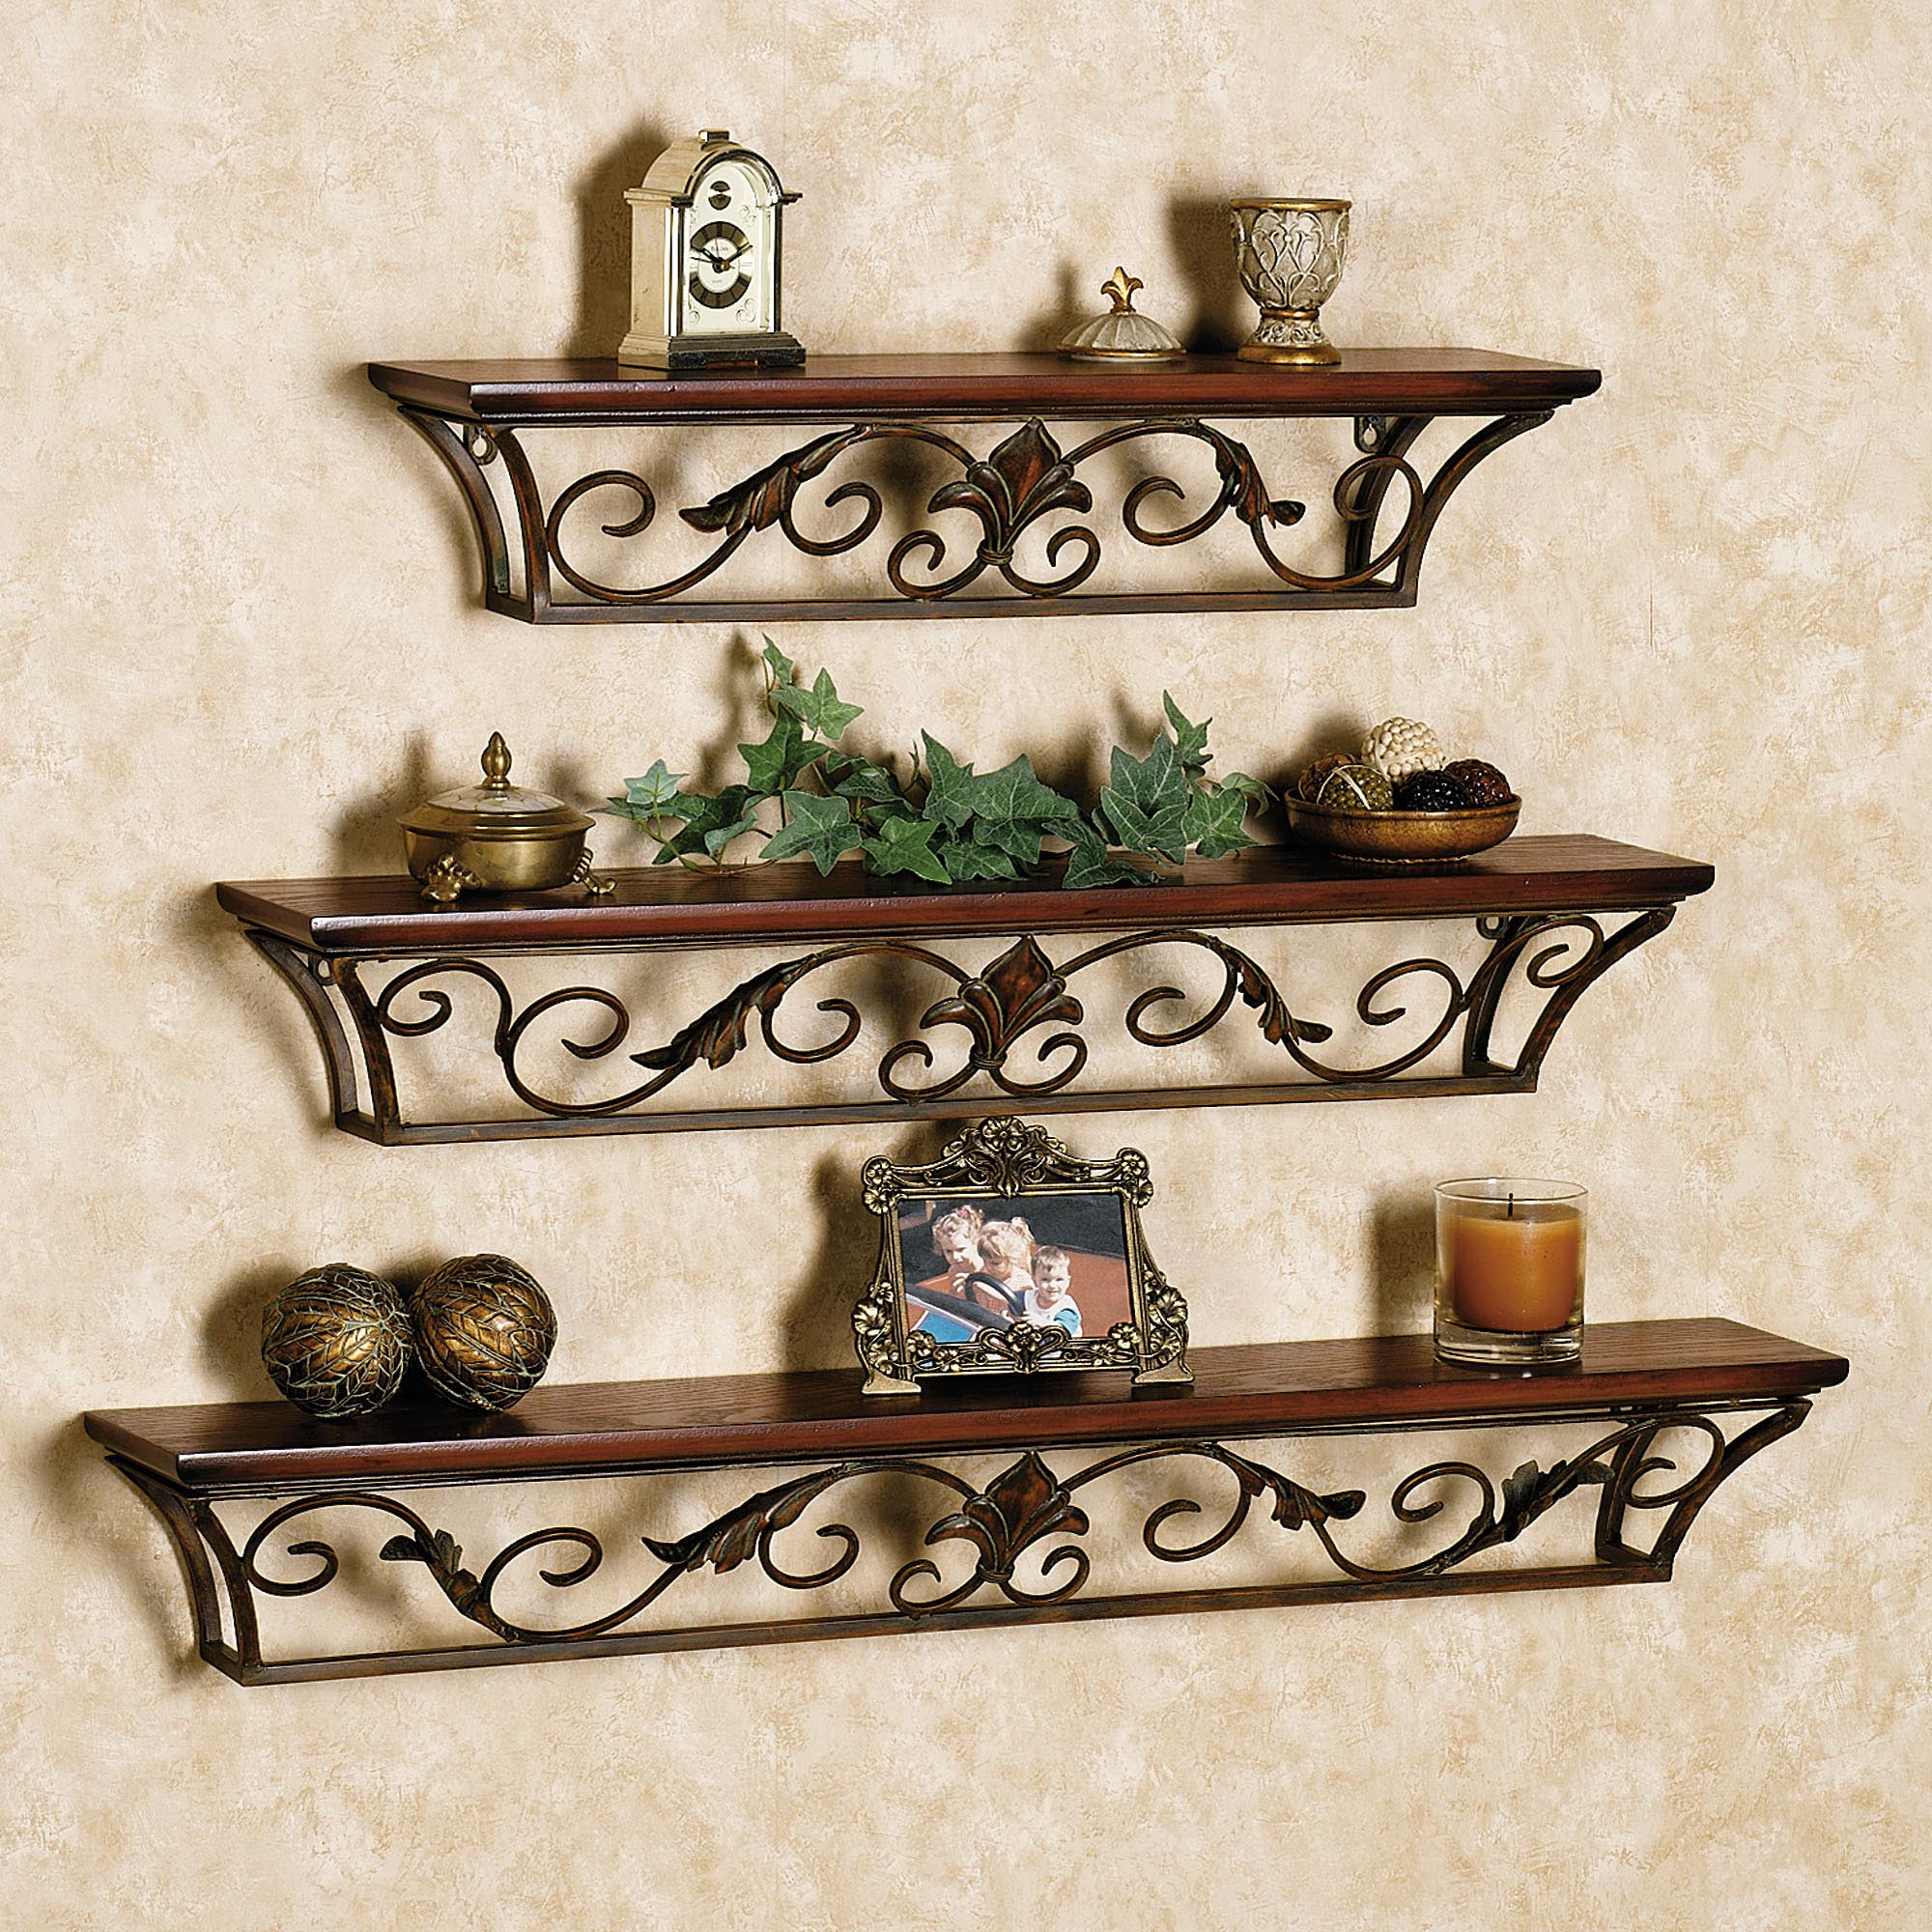 Unique Wall Shelf Small Decorative Wall Shelves Best Decor Things